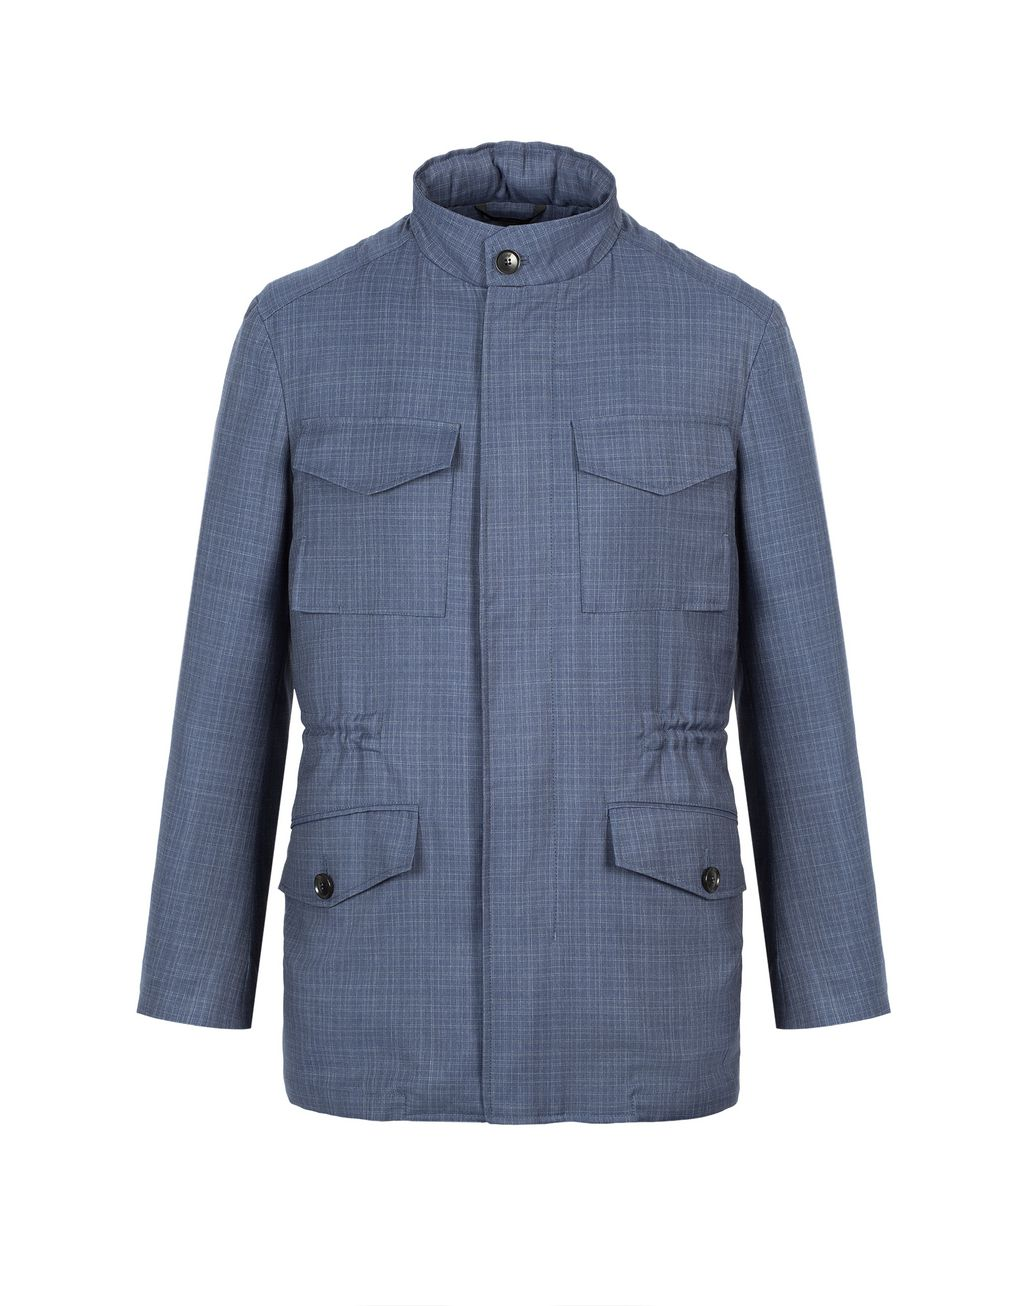 BRIONI Navy Blue Check Trans Seasonal Field Jacket Outerwear U f